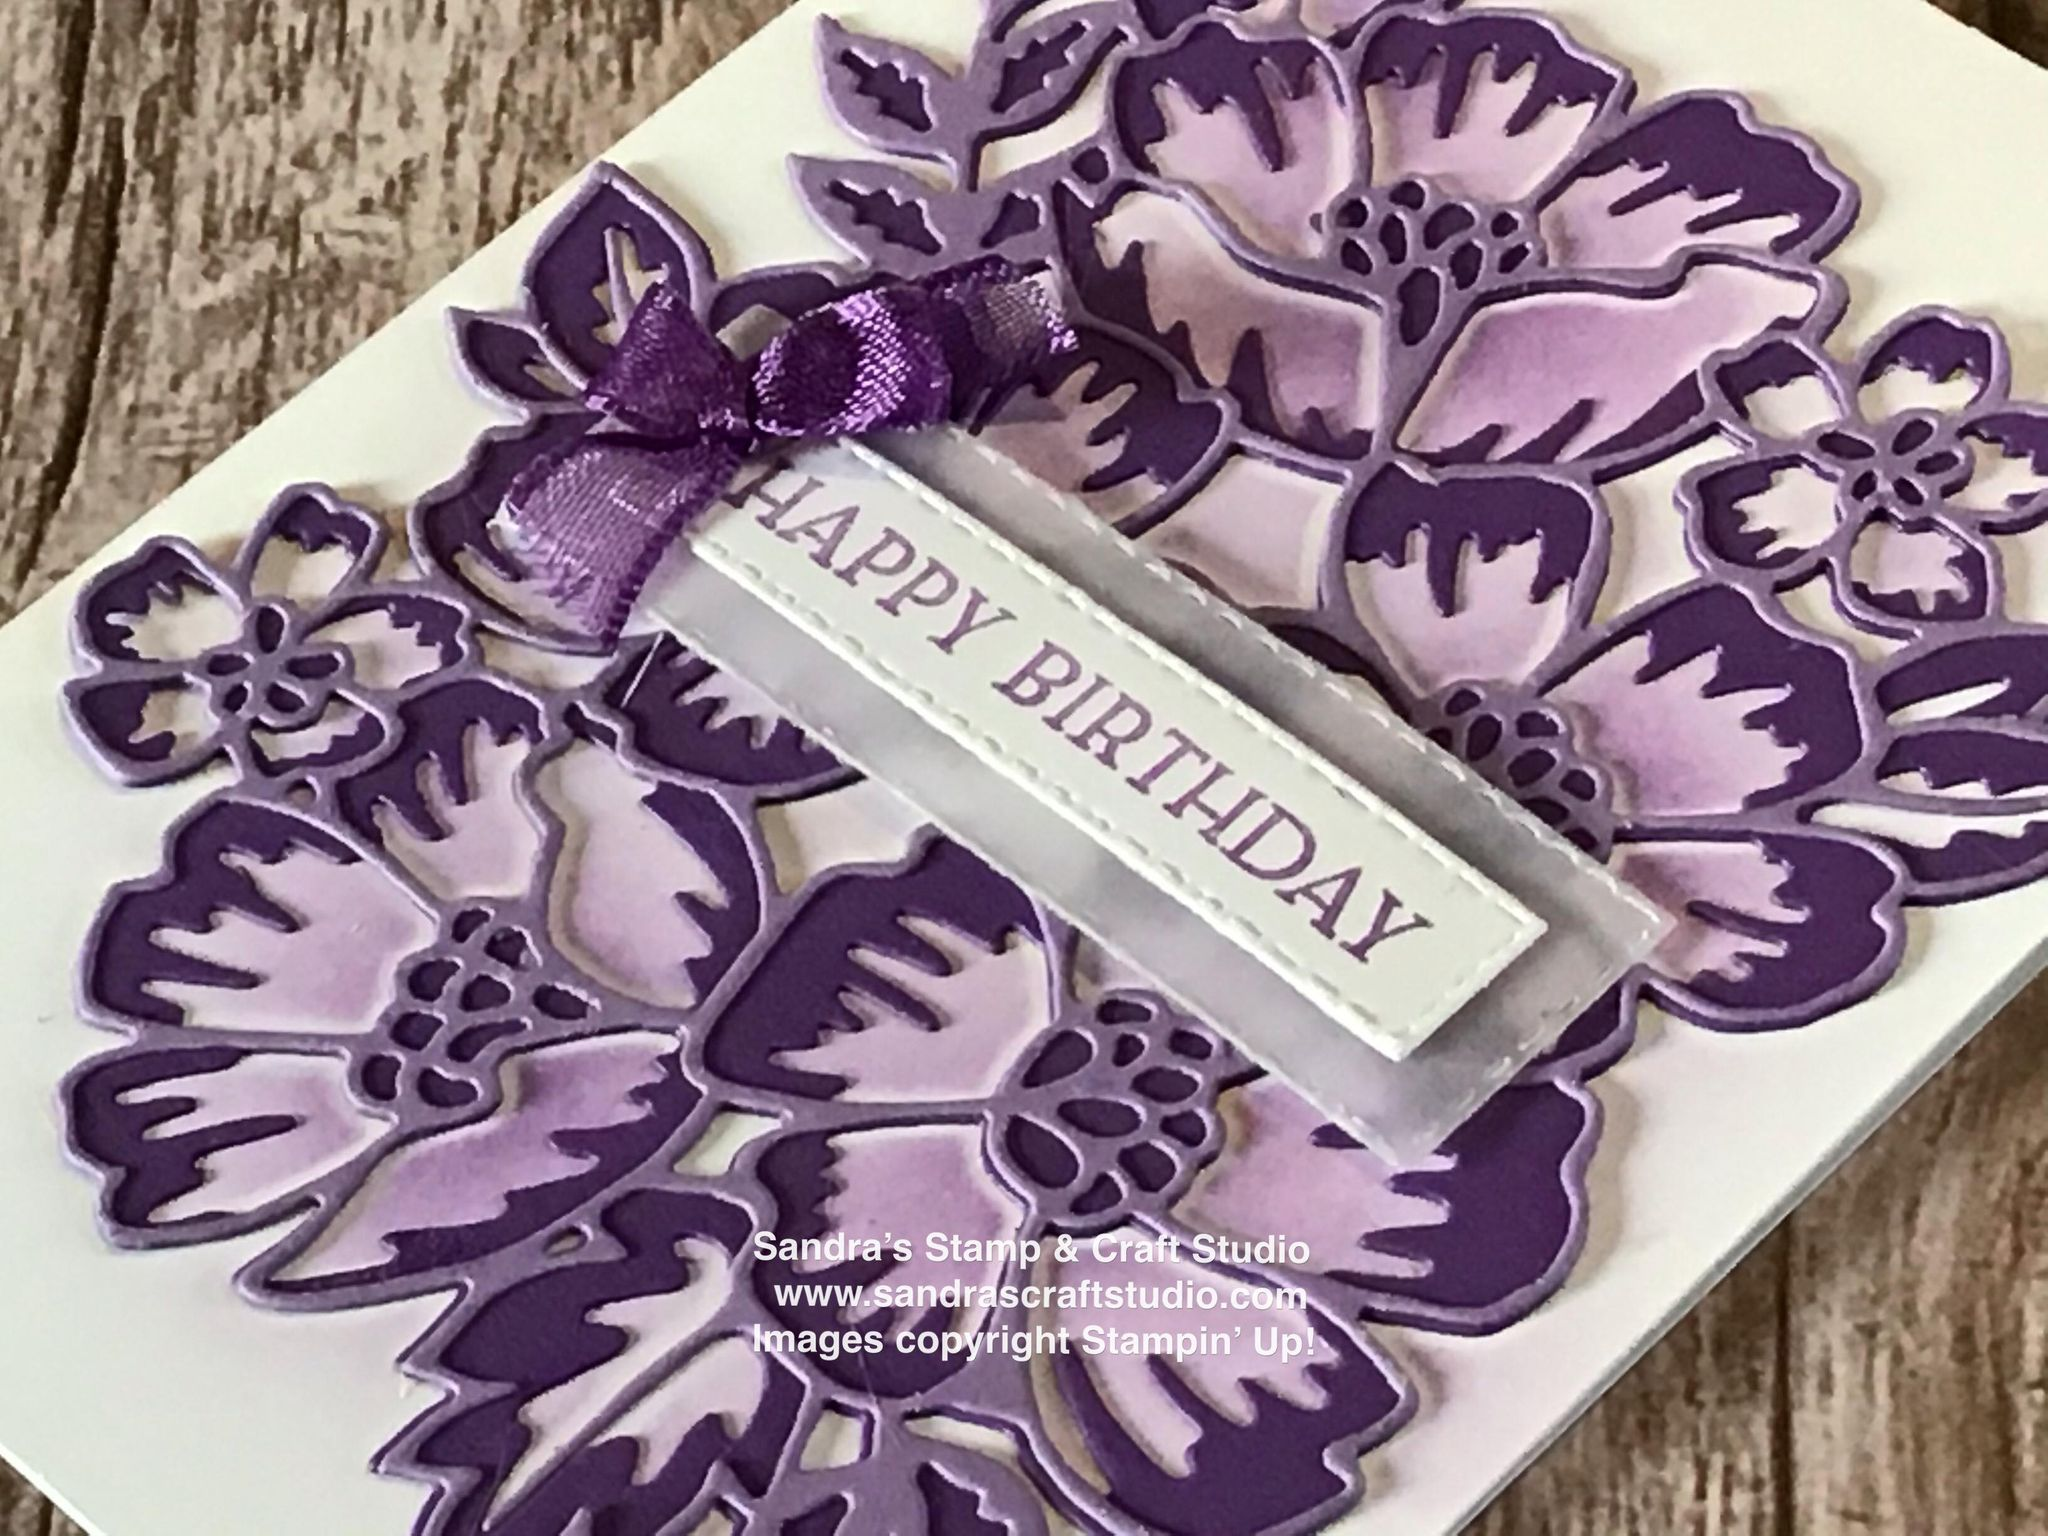 Handmade card created using Blossoms In Bloom Stamp & Die bundle from Stampin' Up!